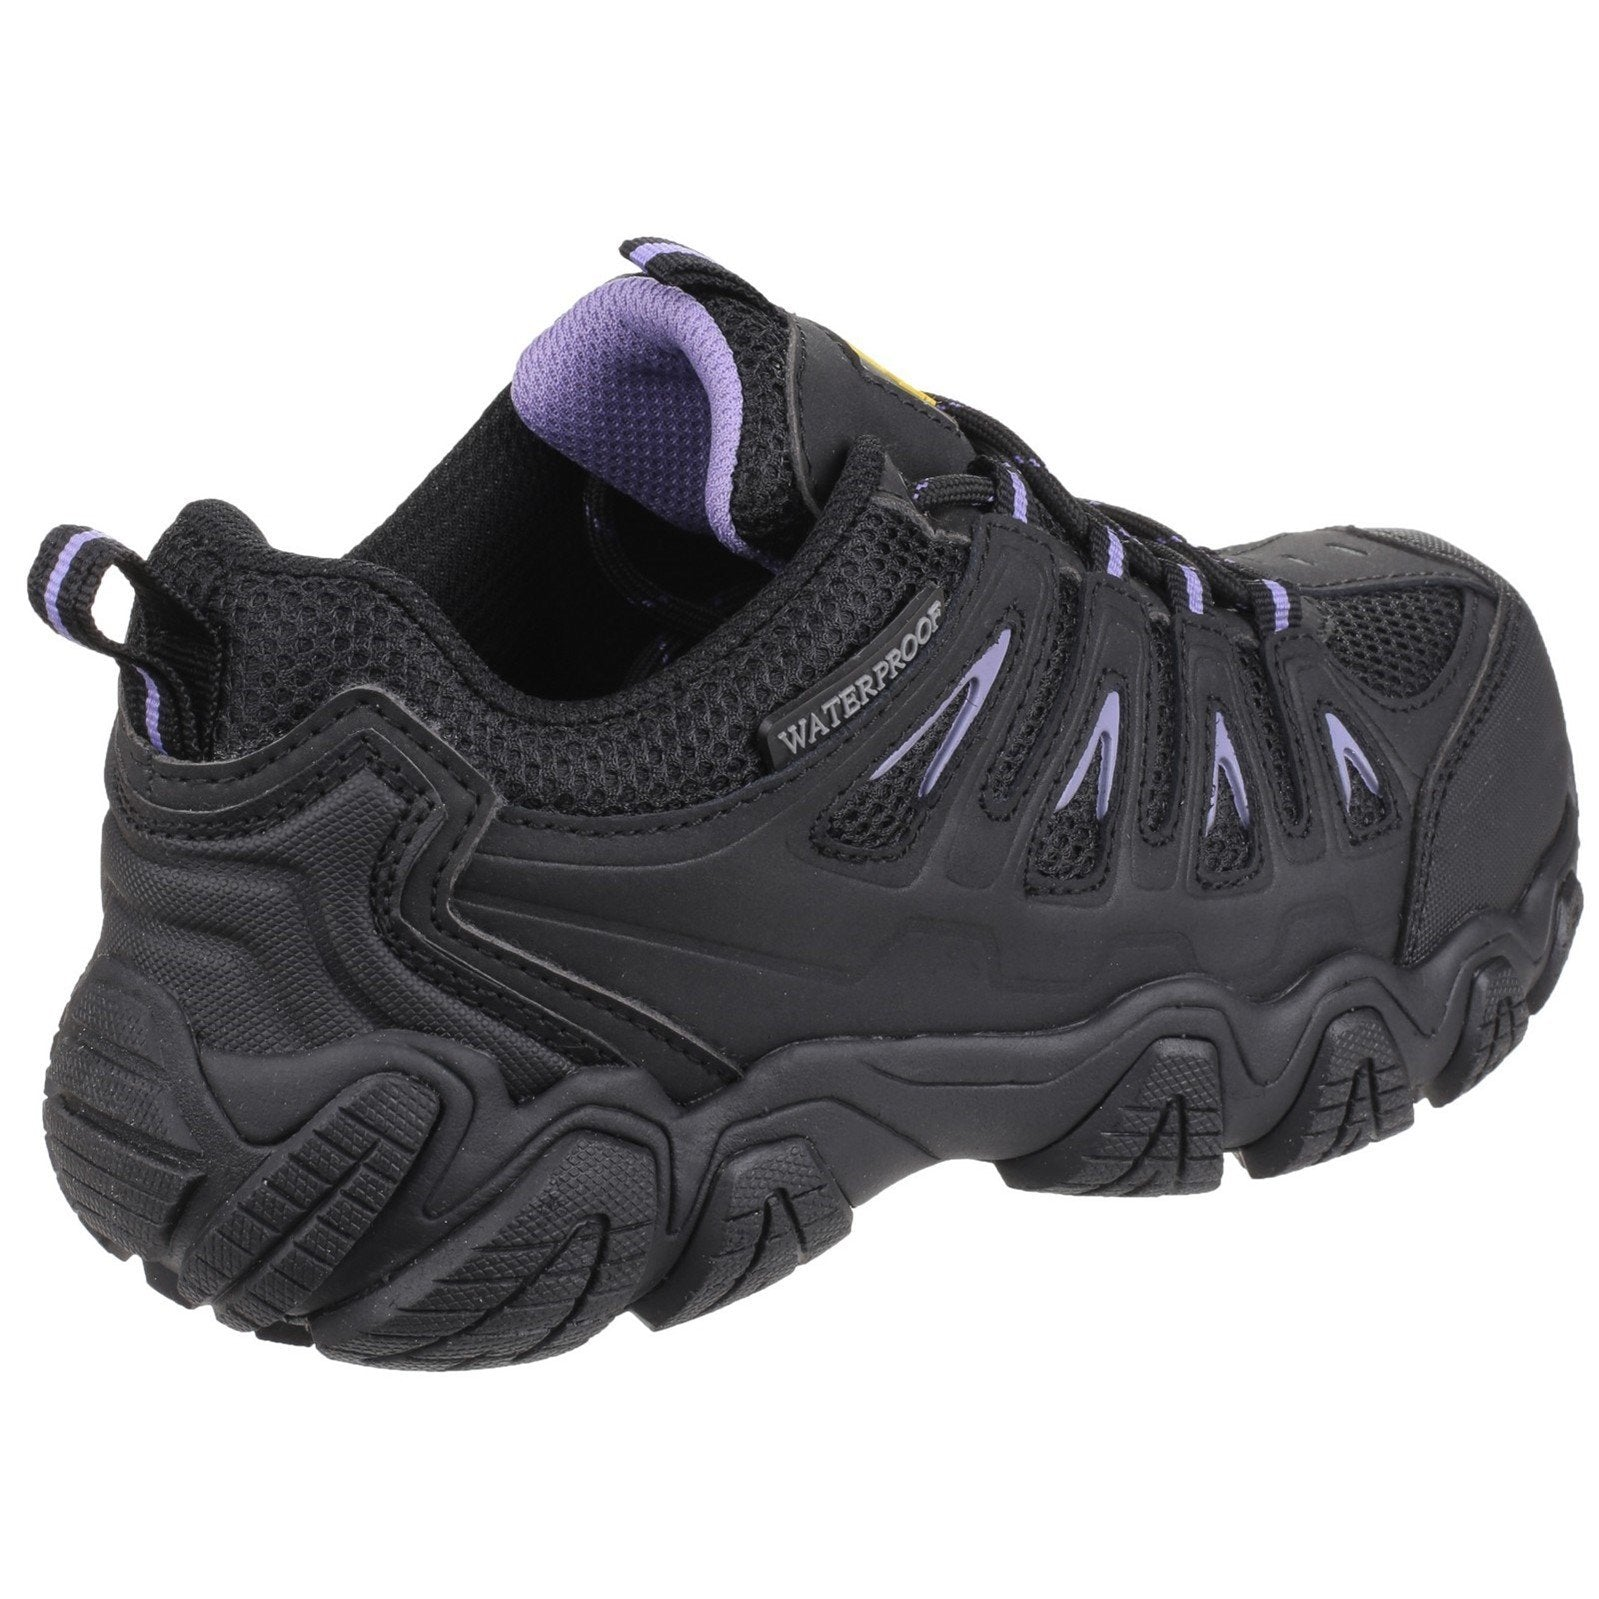 Amblers Ladies Safety Trainers